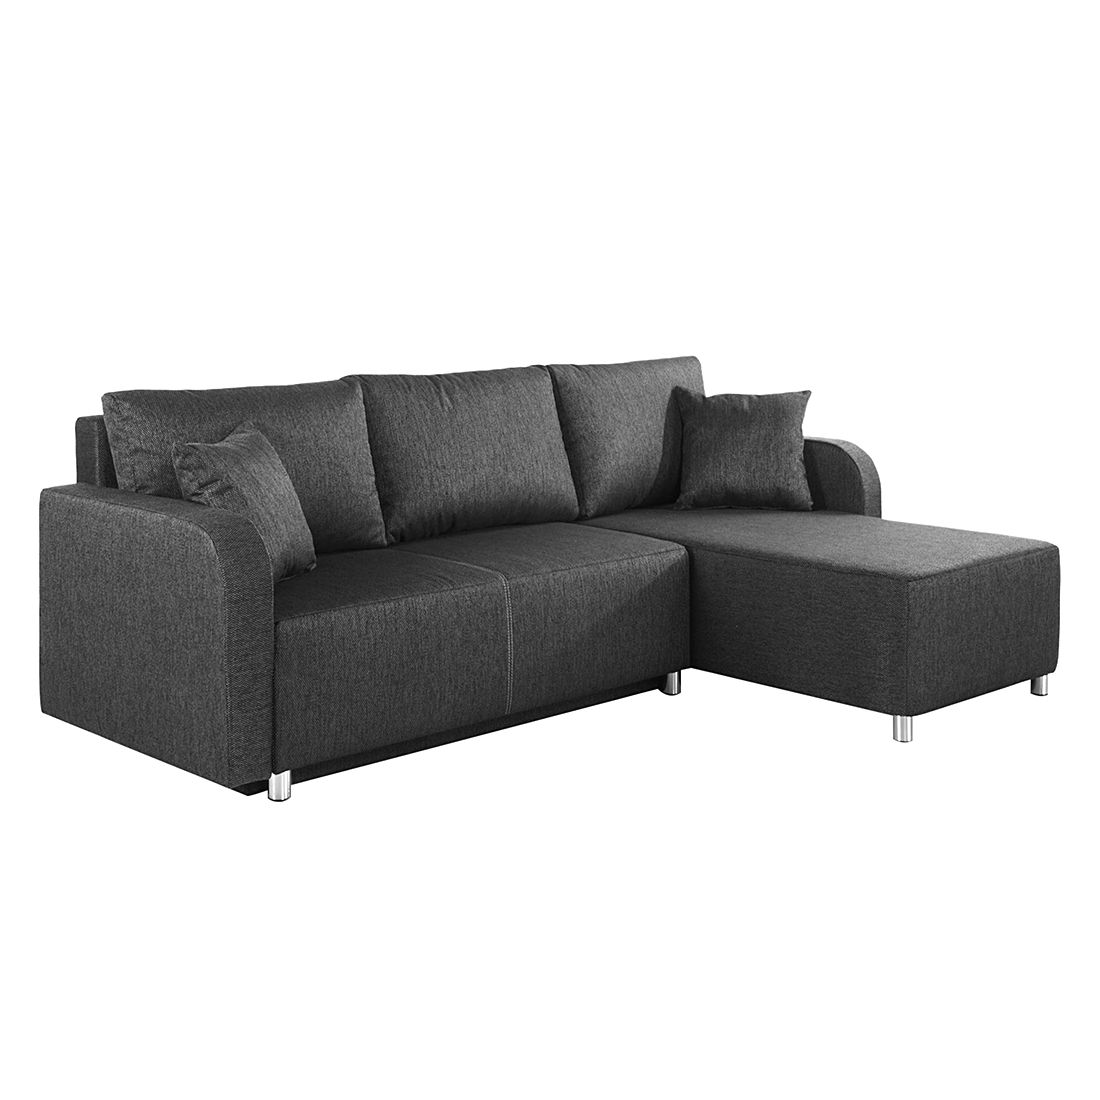 ecksofa tetony mit schlaffunktion webstoff grau. Black Bedroom Furniture Sets. Home Design Ideas